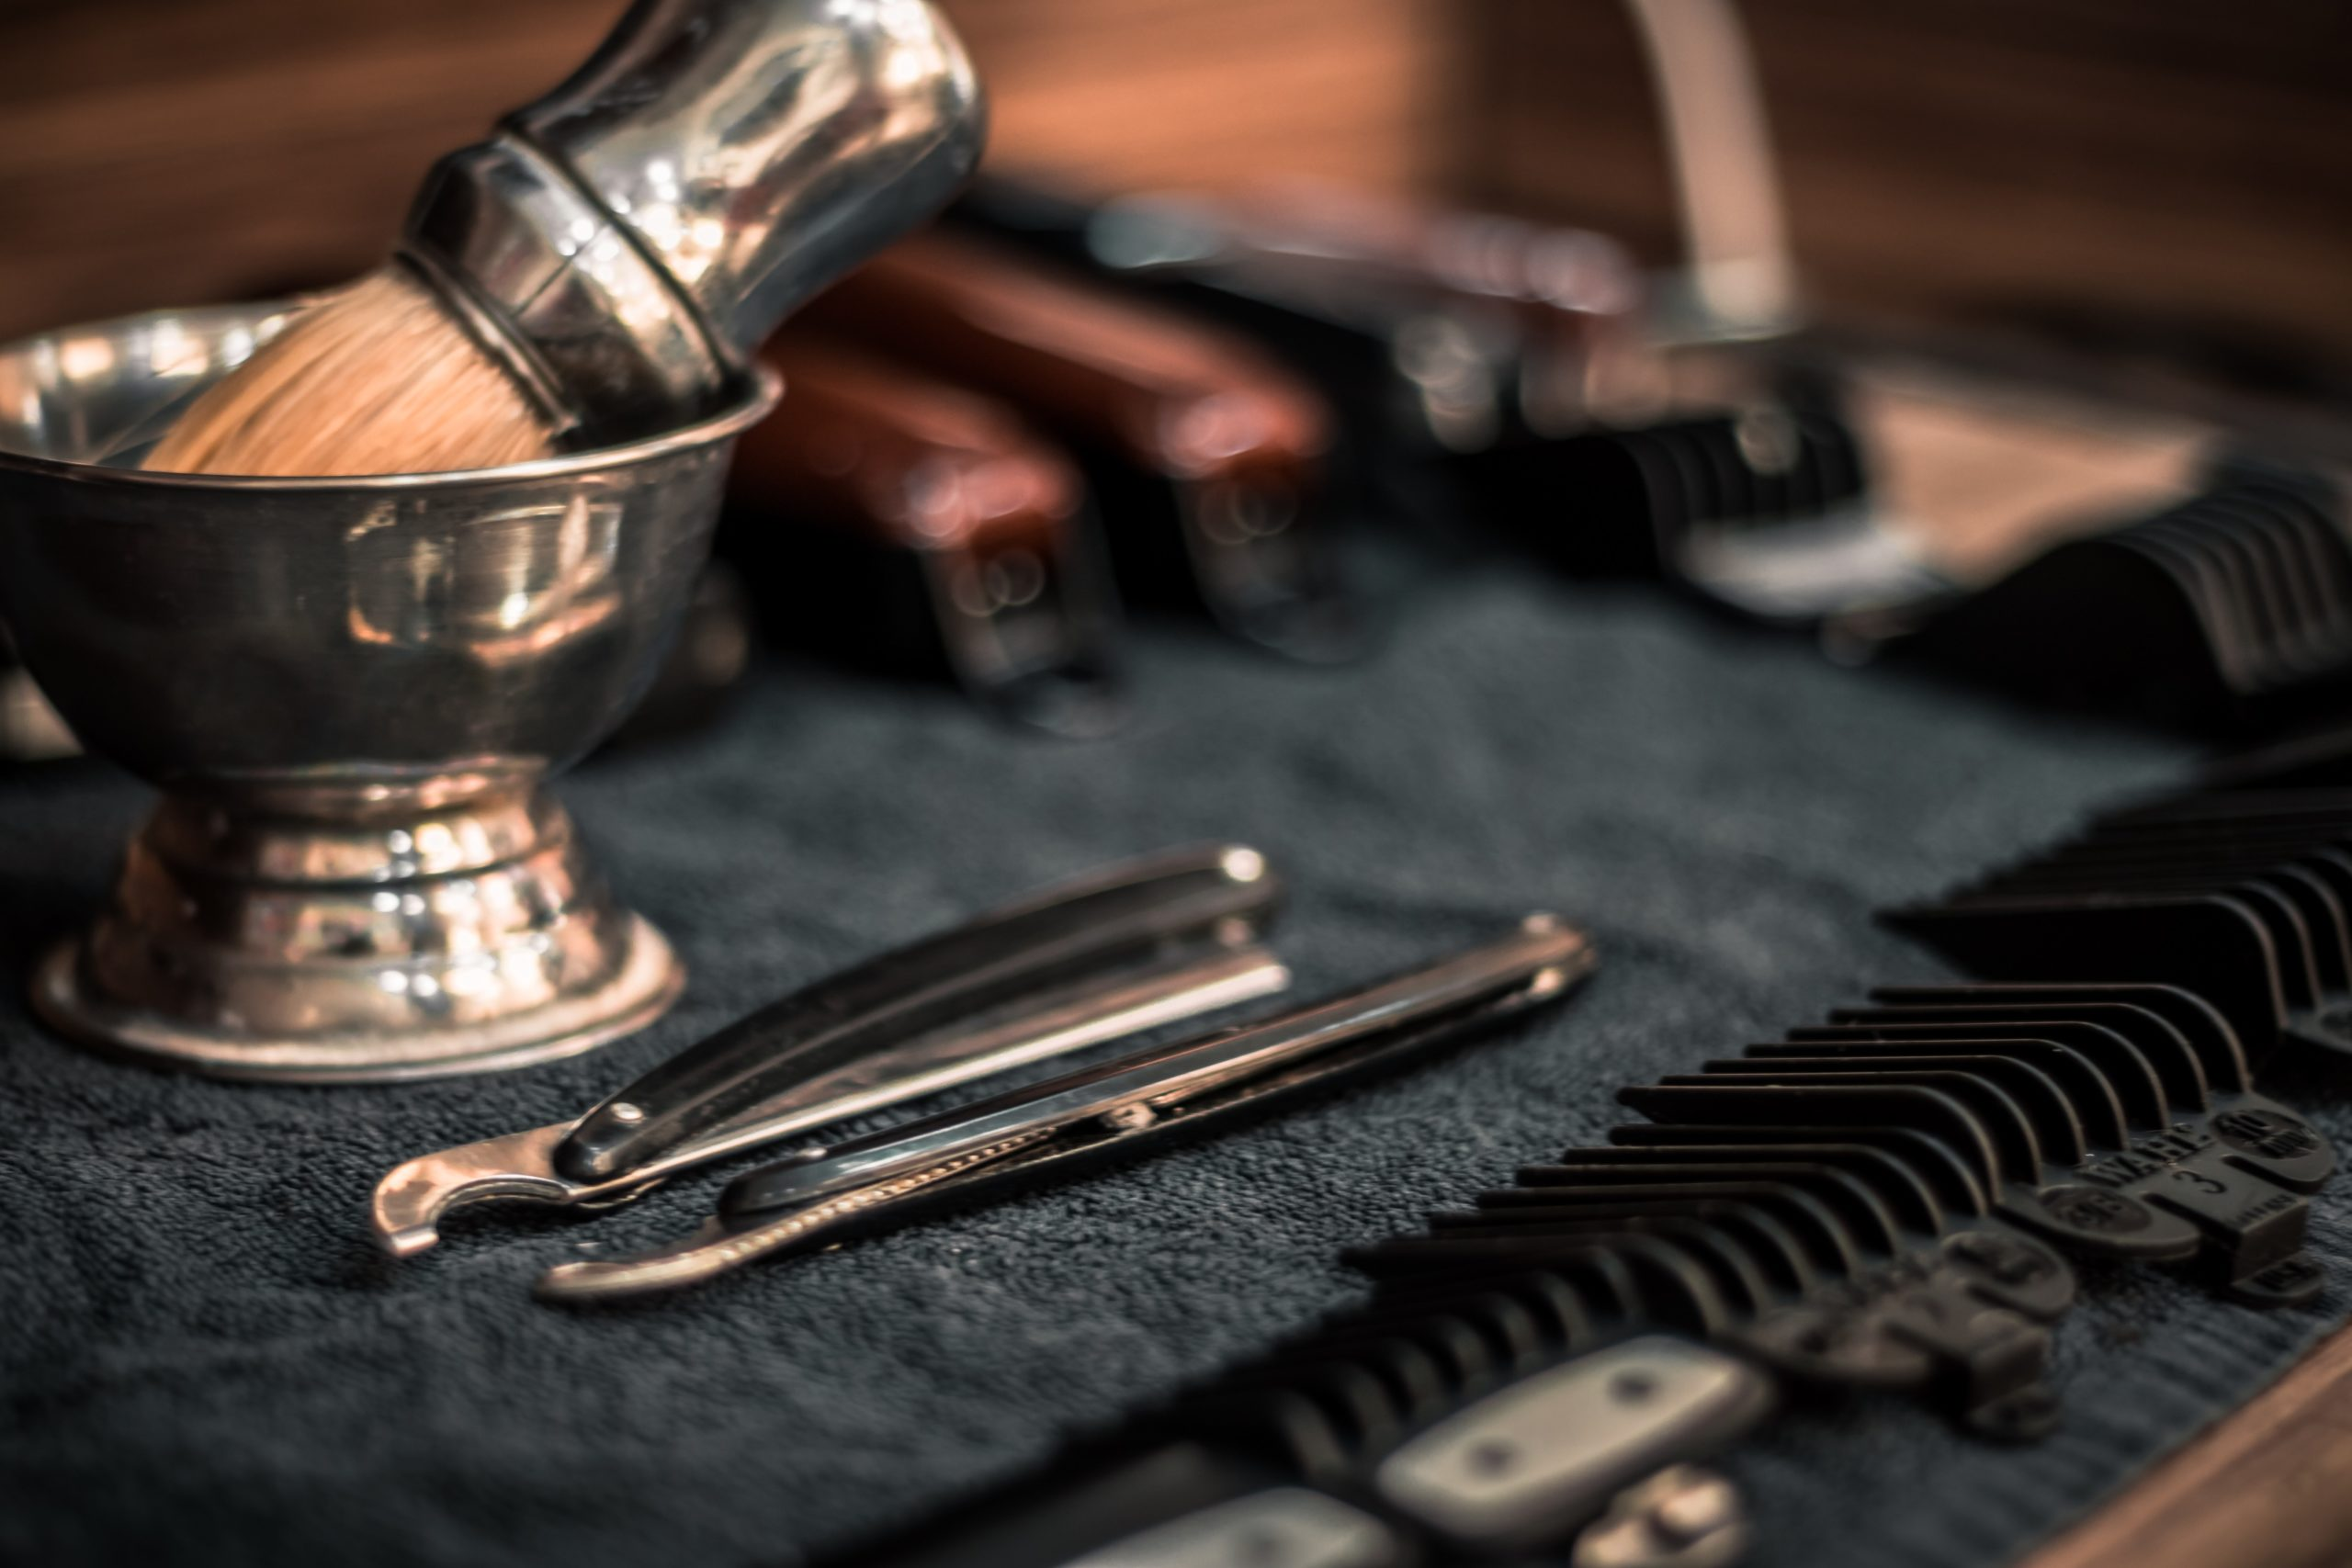 Barbering tools laid out on a towel.